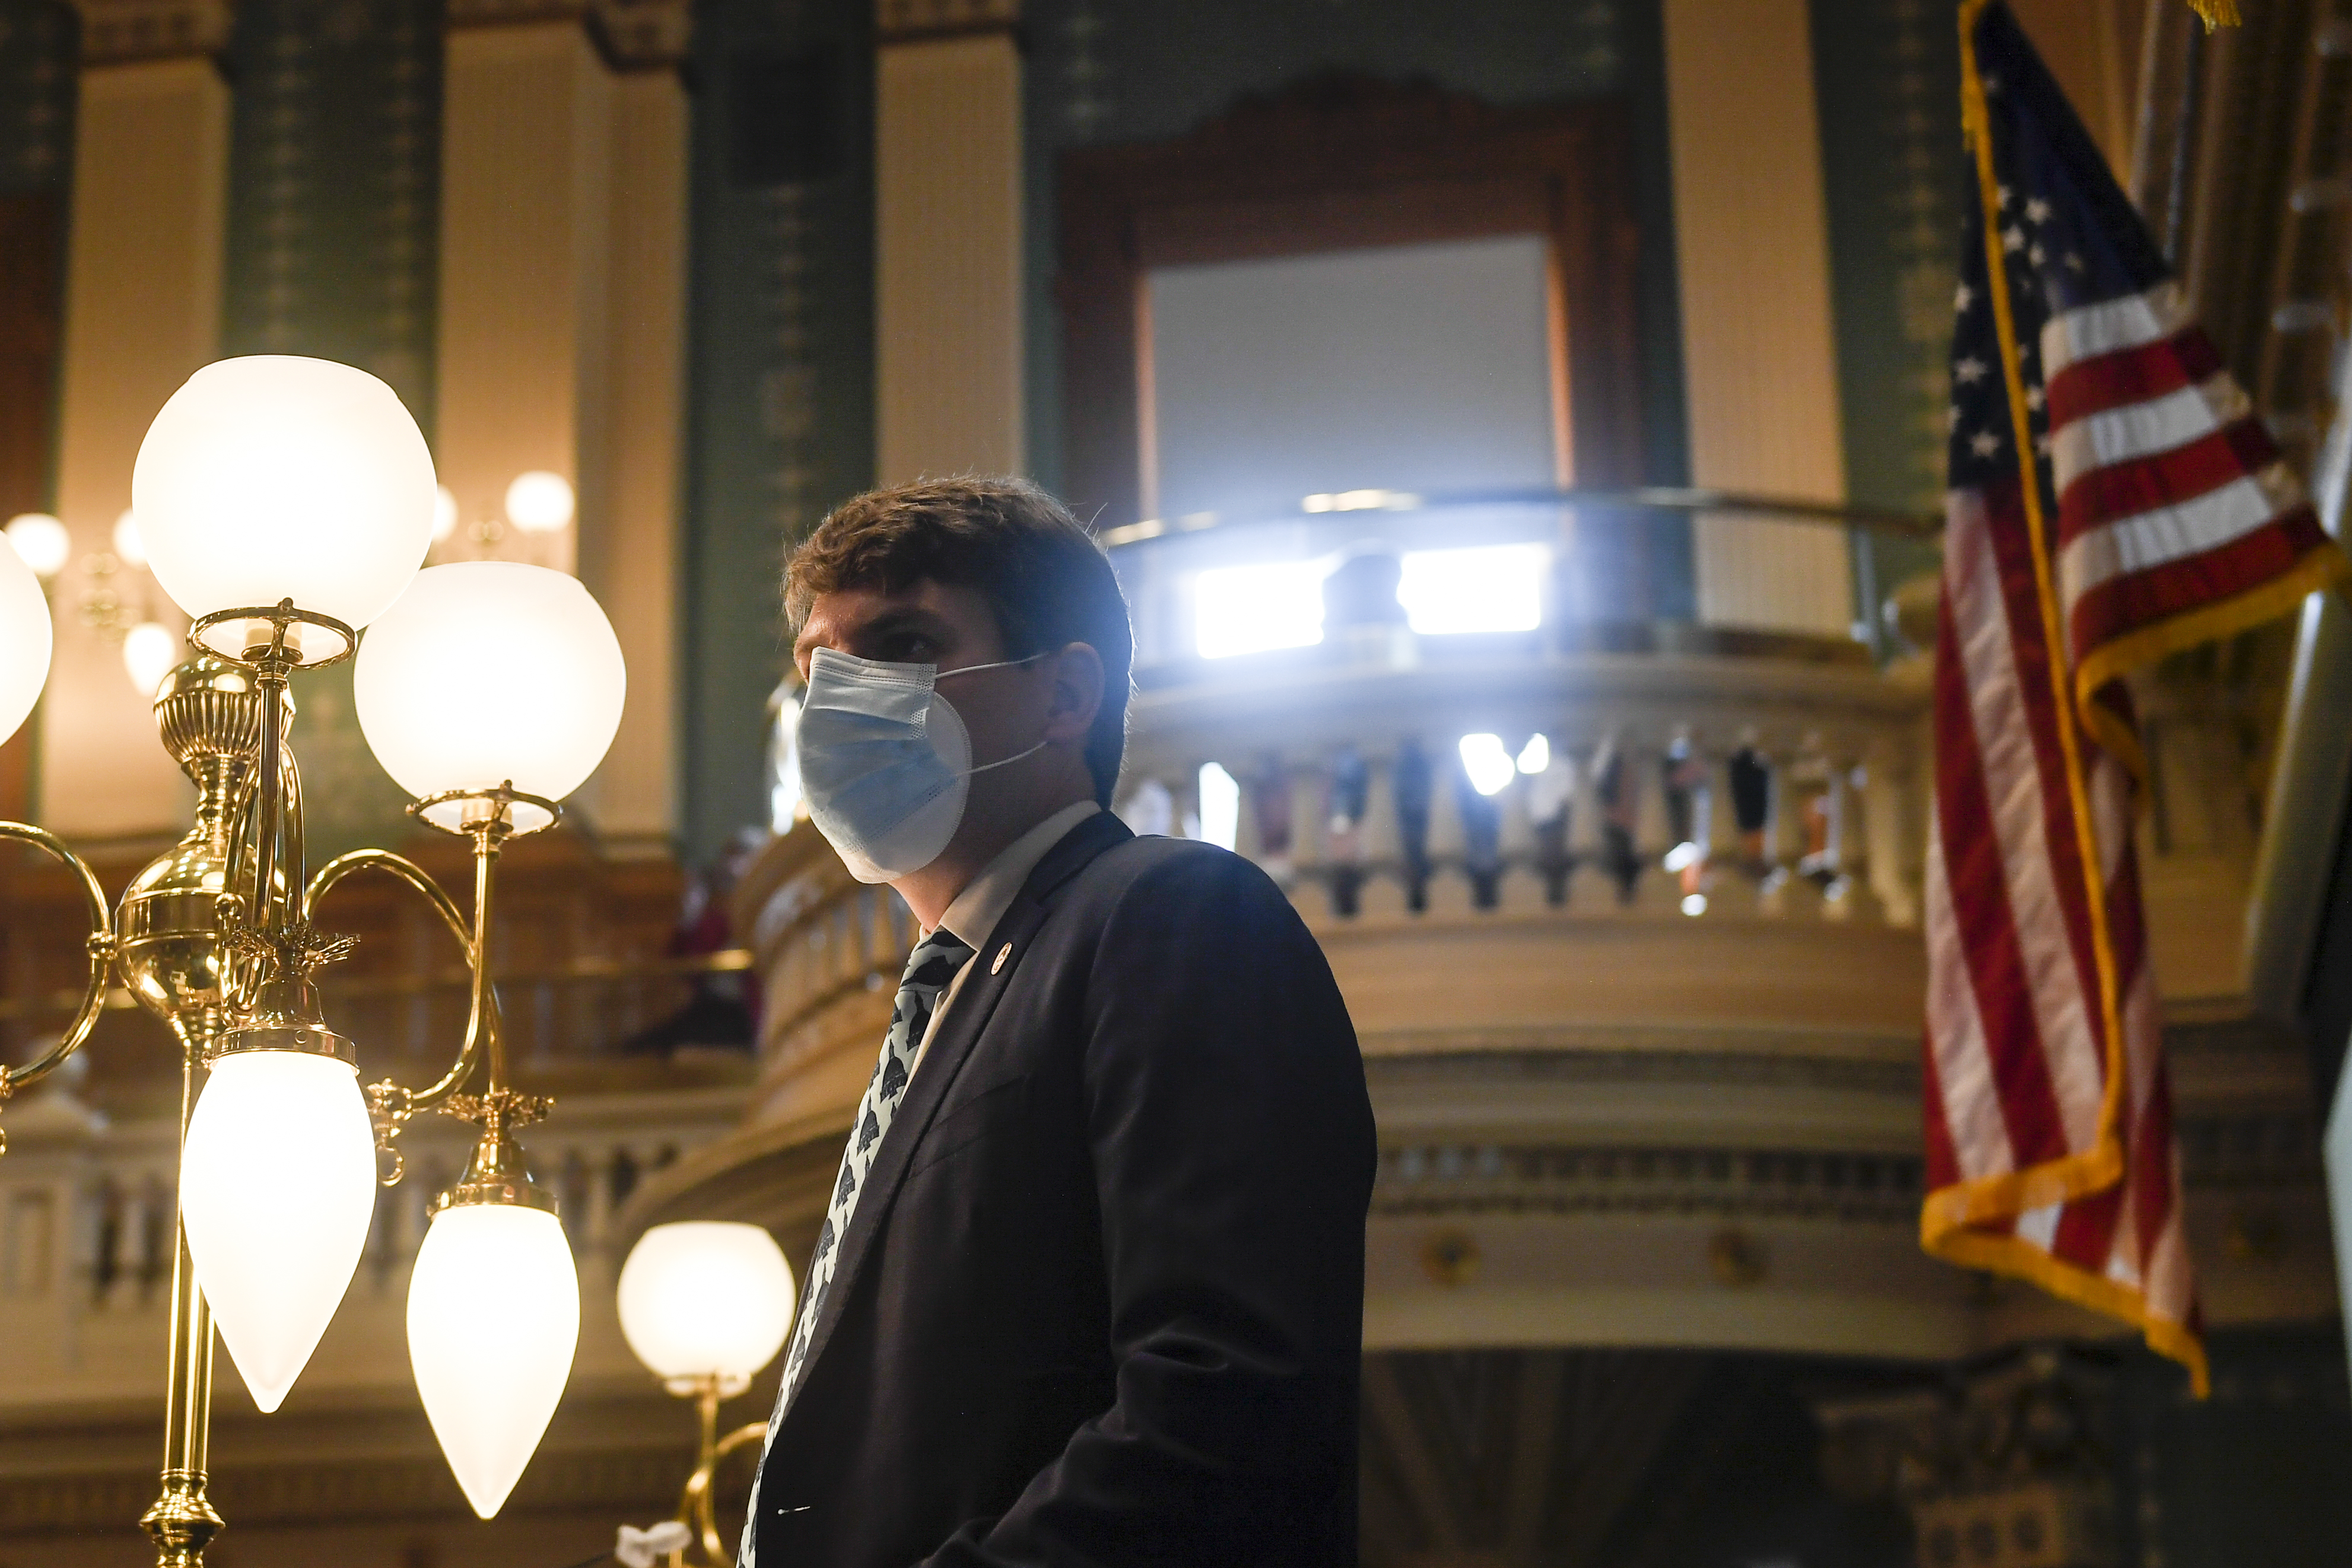 Colorado Speaker of the House Alec Garnett listens to an introduction in the State House chambers. He is wearing mask in an ornate room.